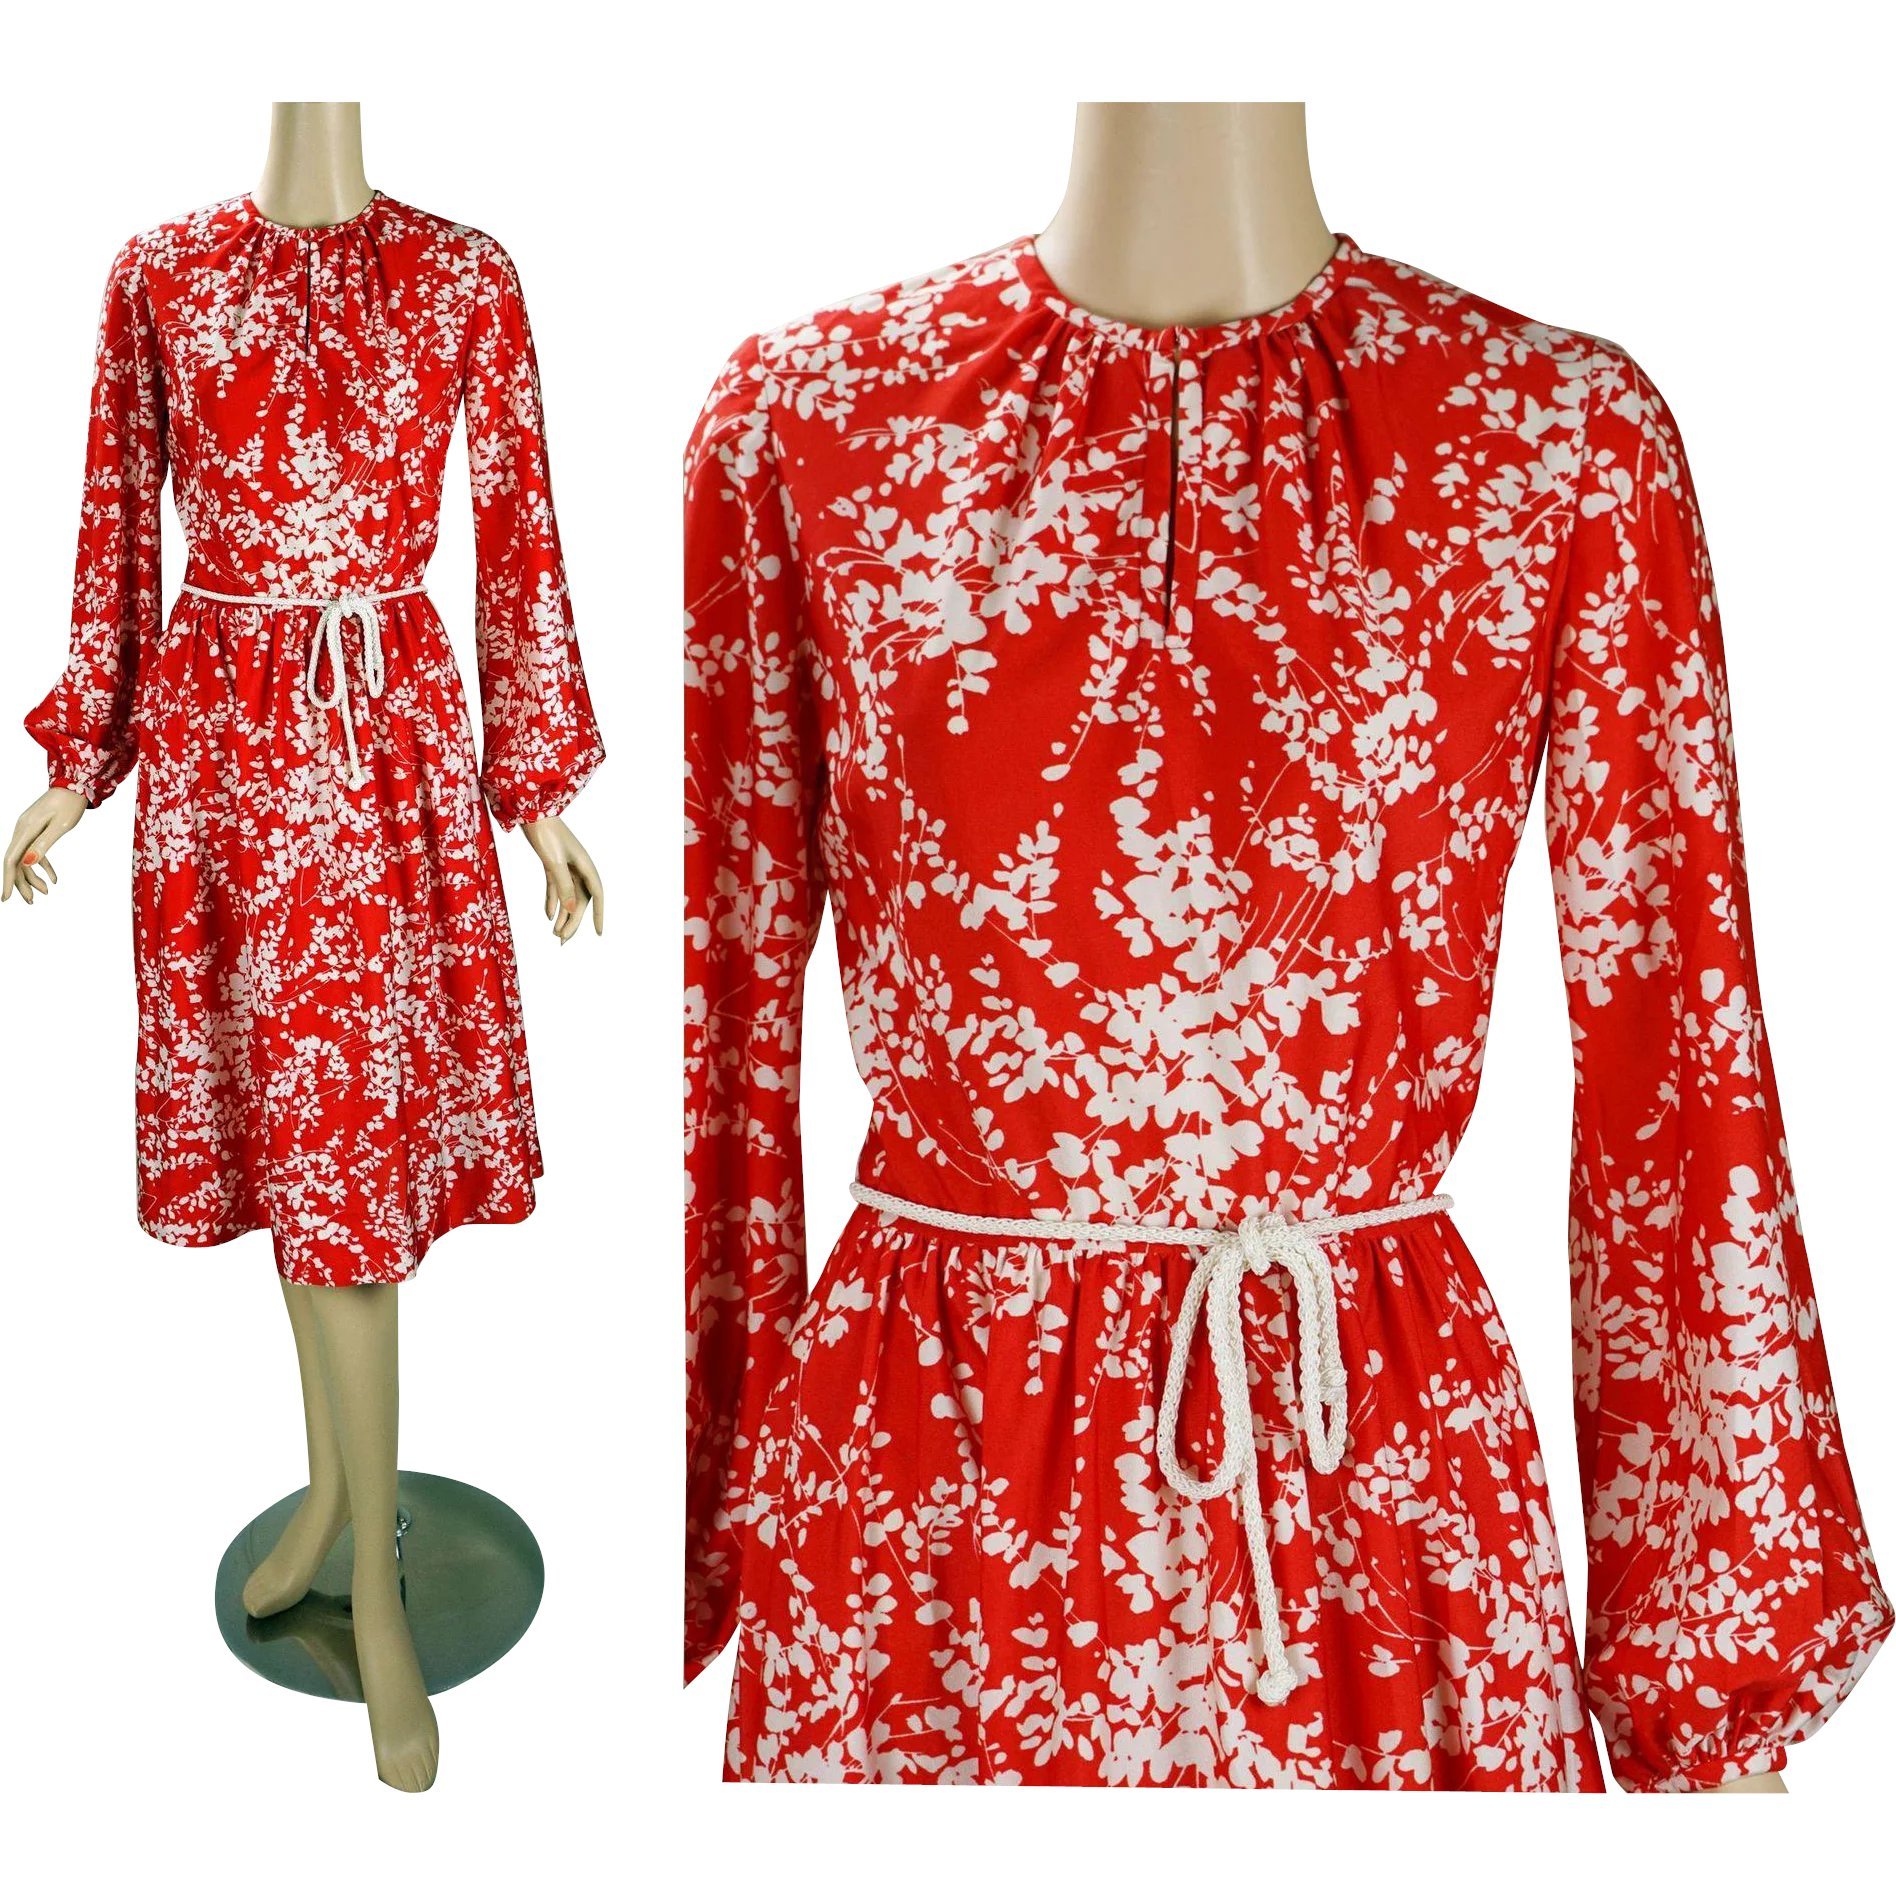 ef53255edc0 1970s Vintage Dress Bright Red and White with Balloon Sleeves and   Alley  Cats Vintage